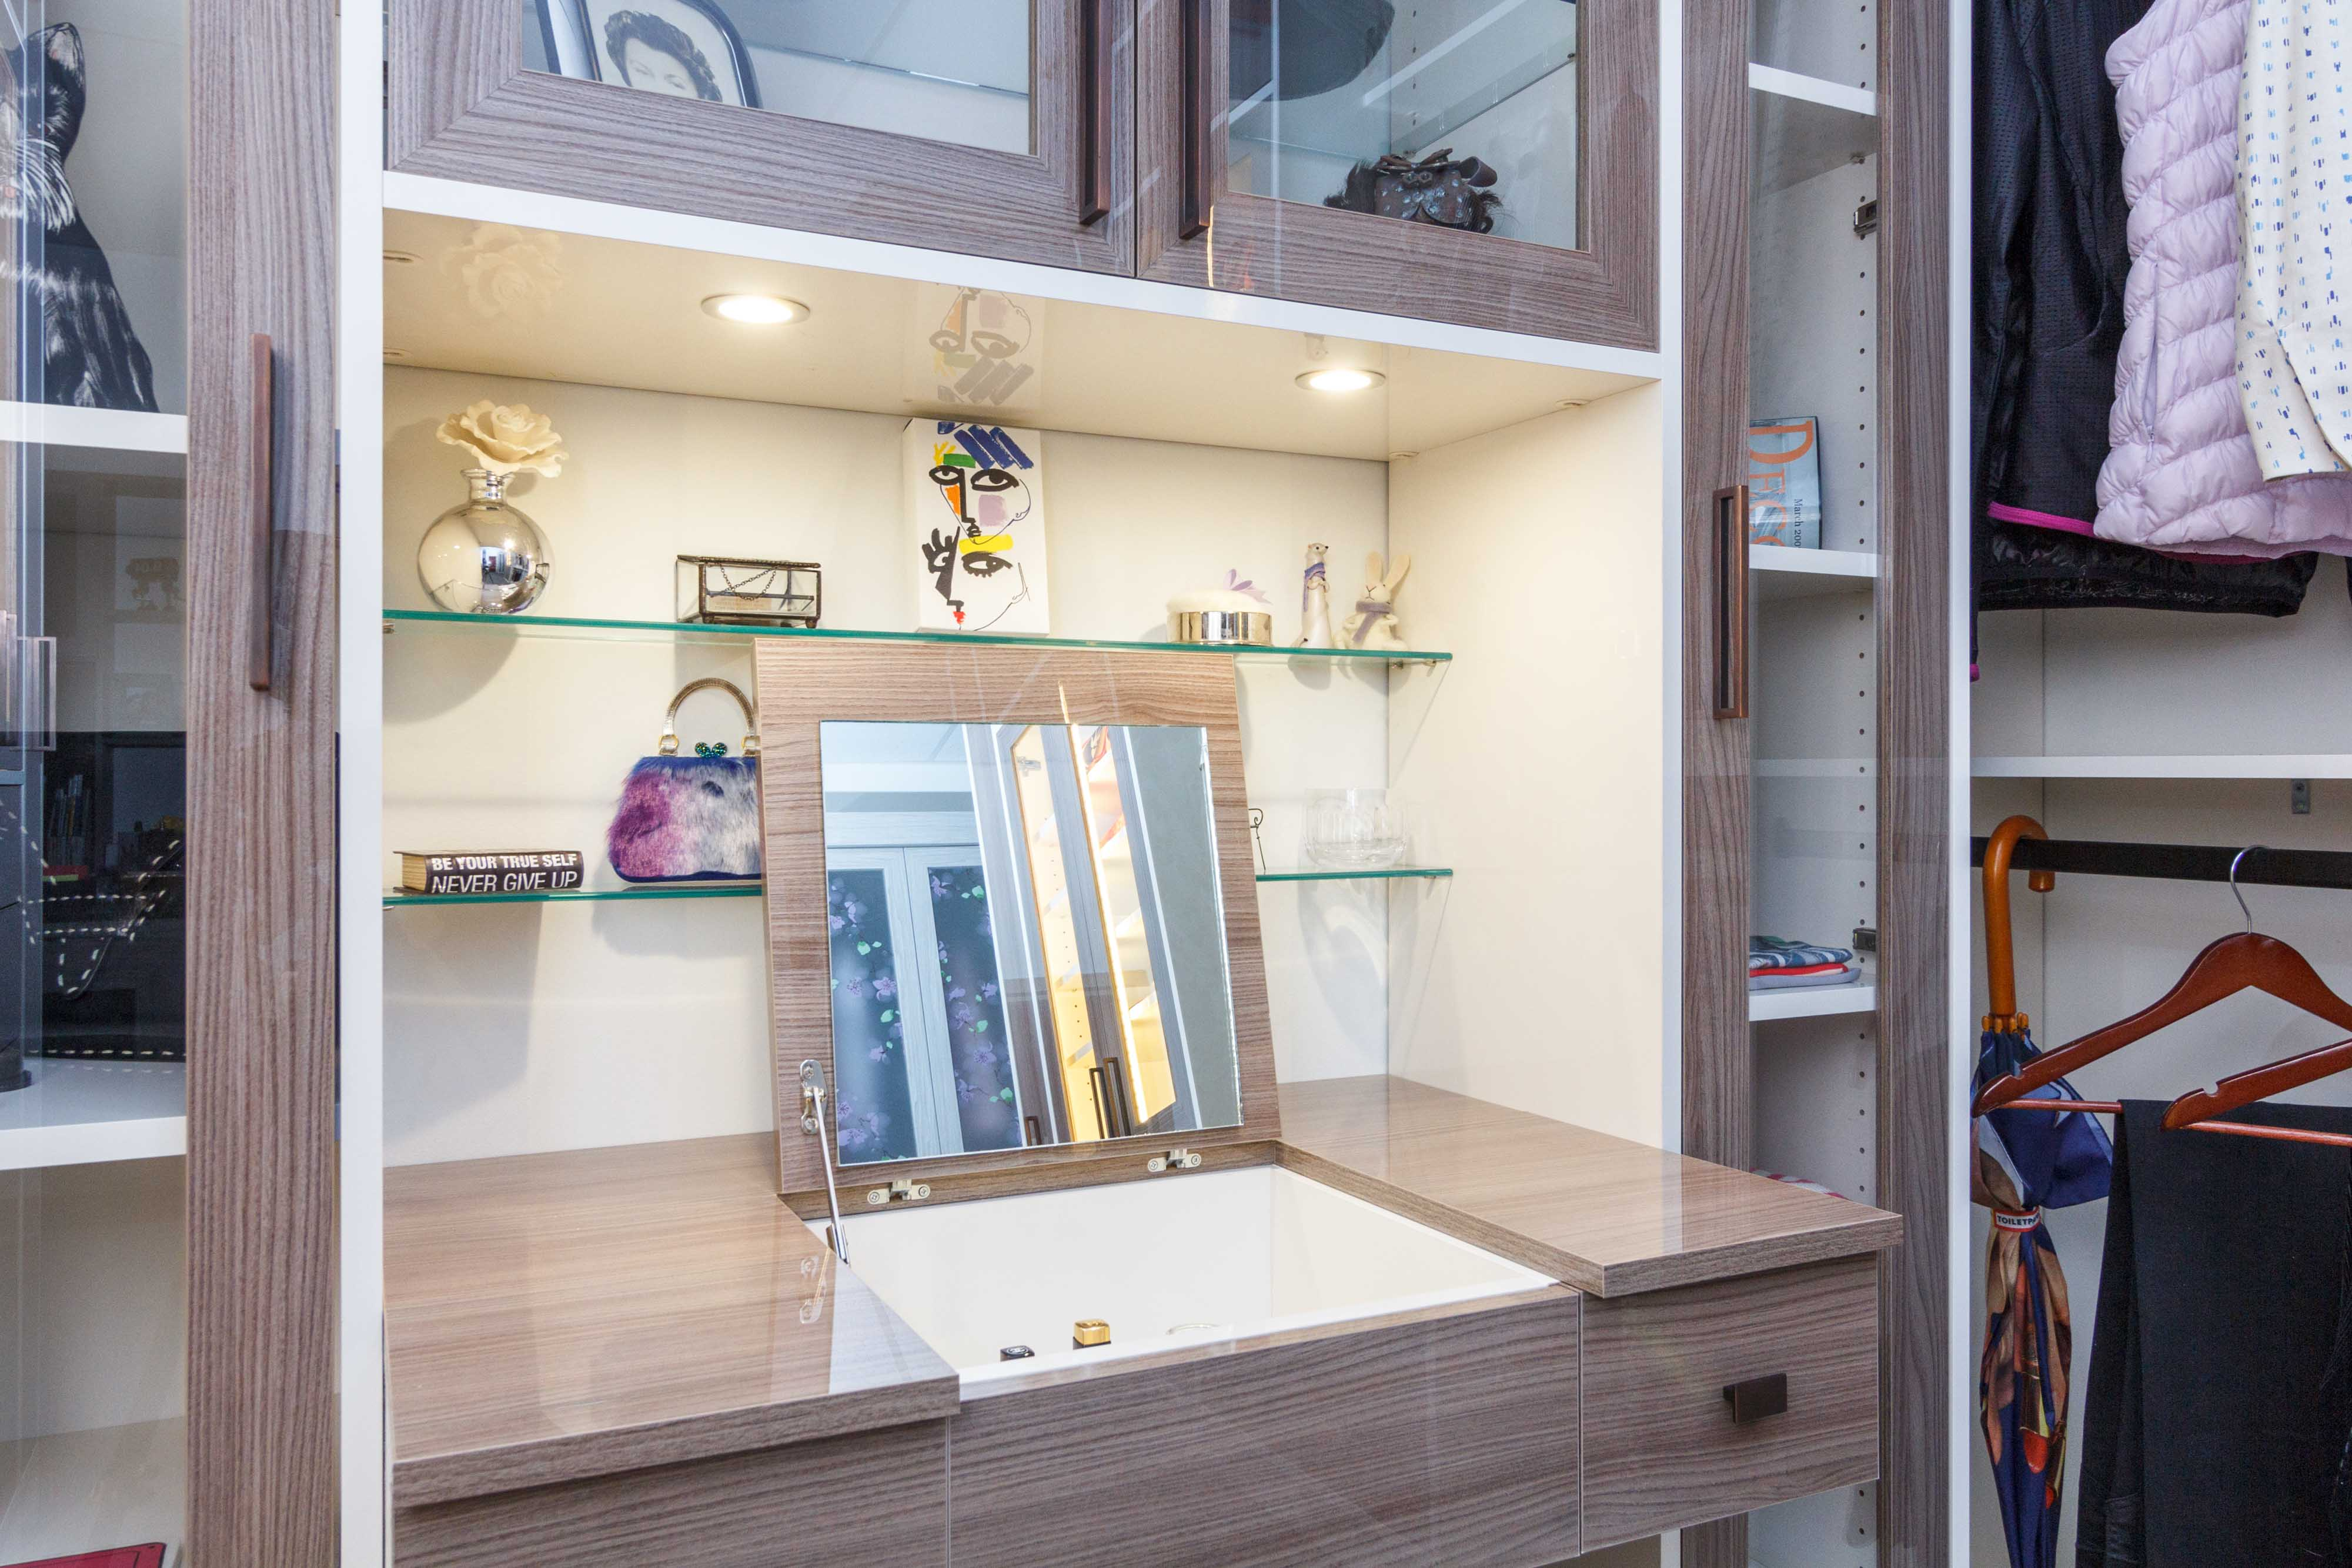 Trending Walk-in closet showcasing glass shelves and a flip up vanity